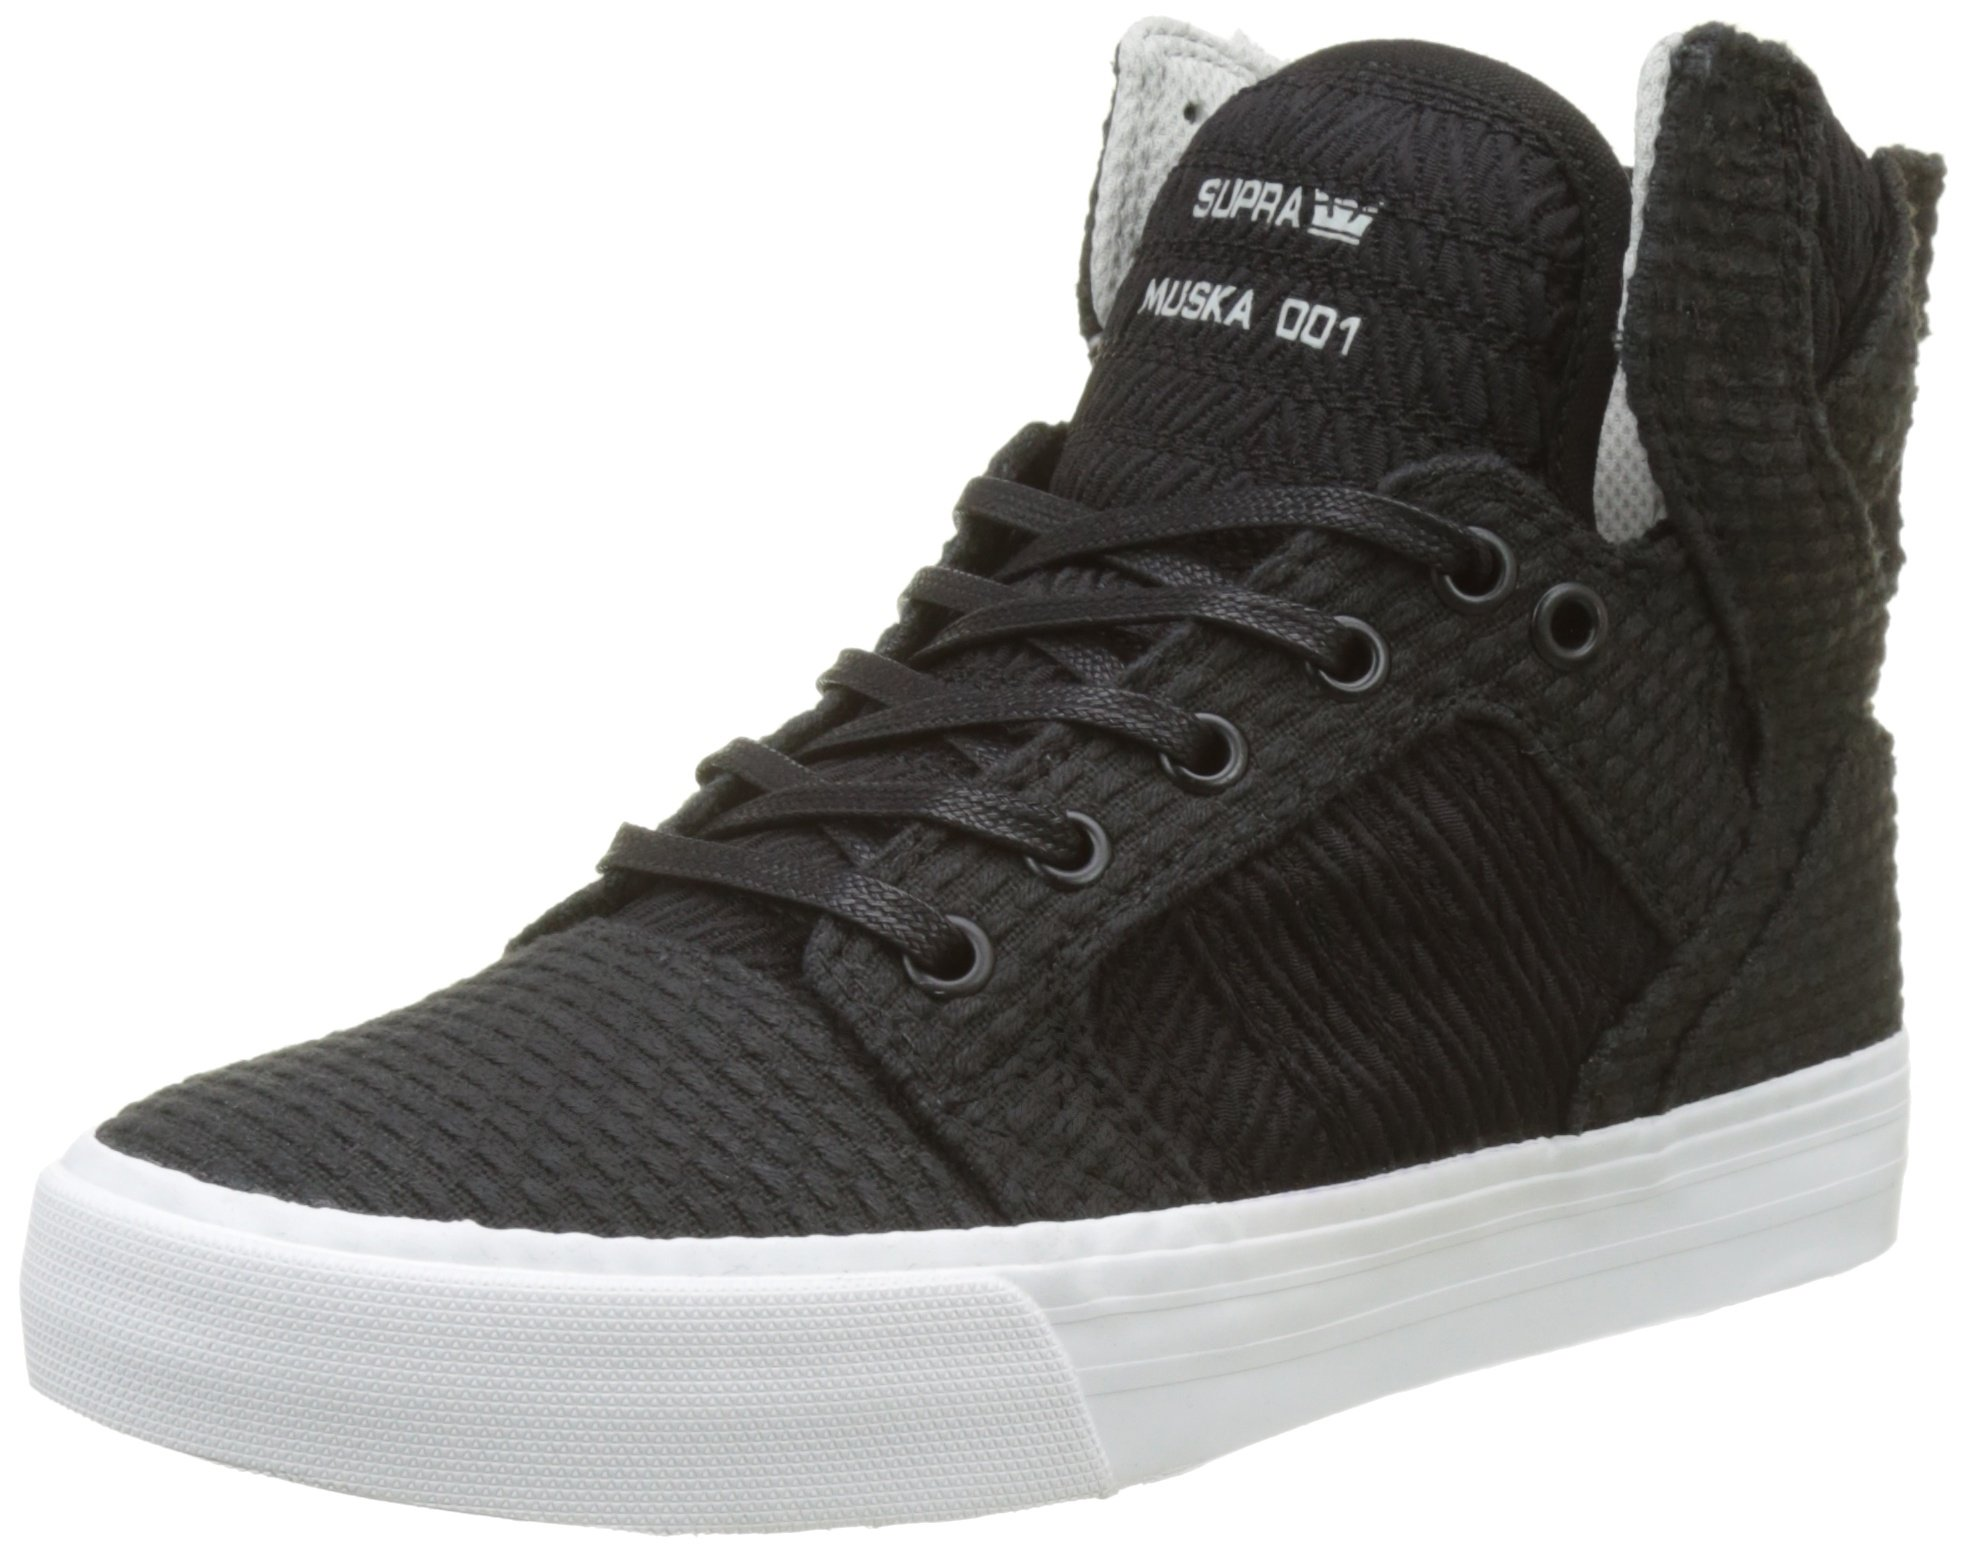 Supra Men's Skytop 2017 Shoes Size 5.5 Black-White/Light Grey